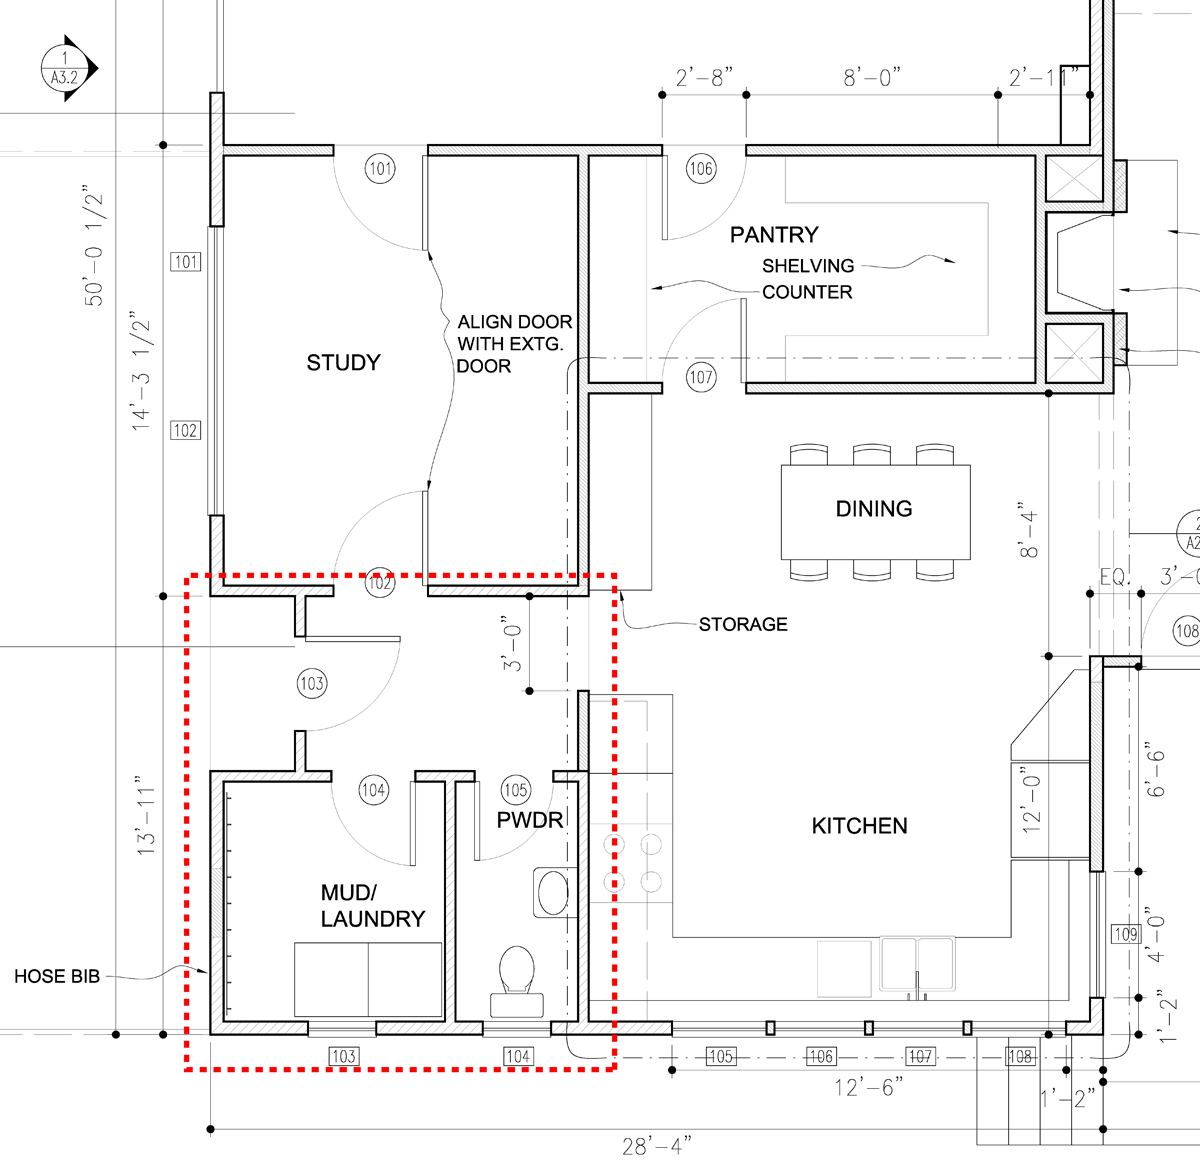 Building a House Between Garage and Laundry Room